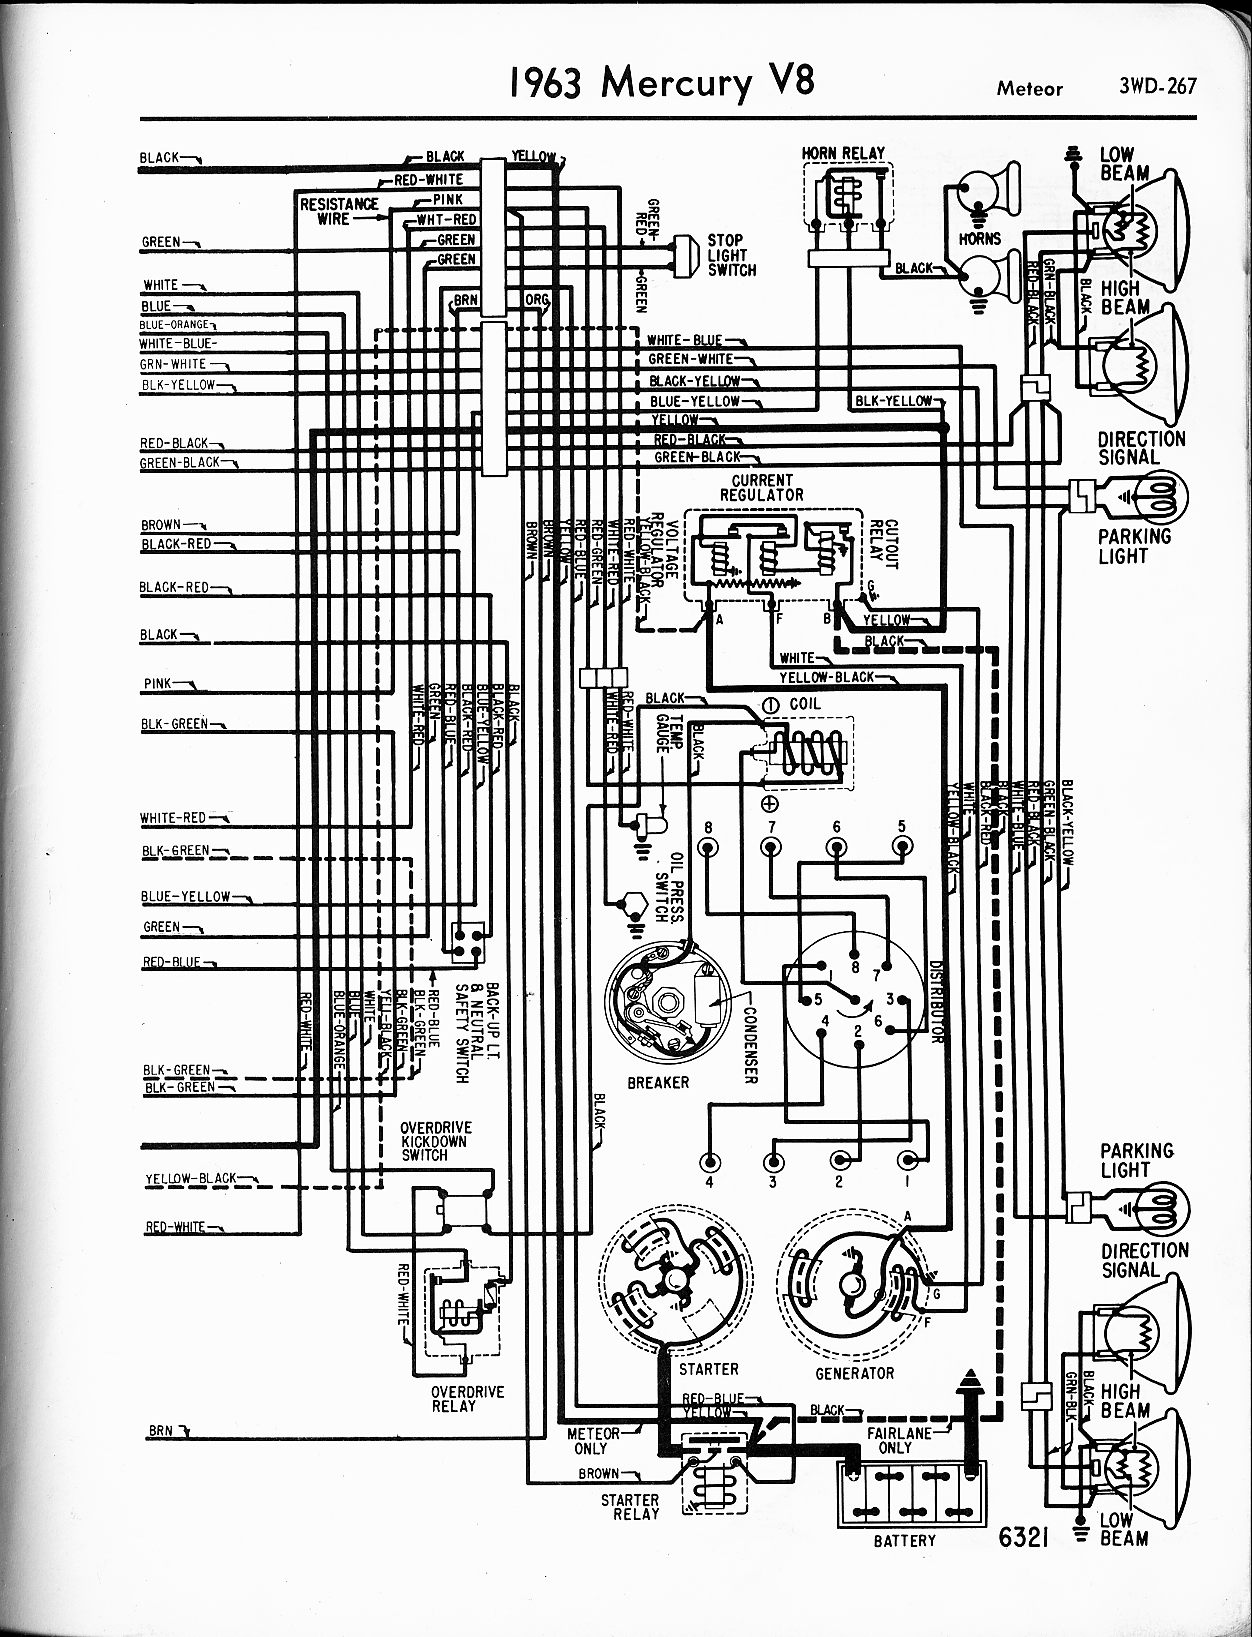 1963 c10 chevy truck wiring diagram wiring diagram GMC Sierra Wiring Schematic 1963 c10 chevy truck wiring diagram wiring diagram explained1963 c10 chevy truck wiring diagram data wiring